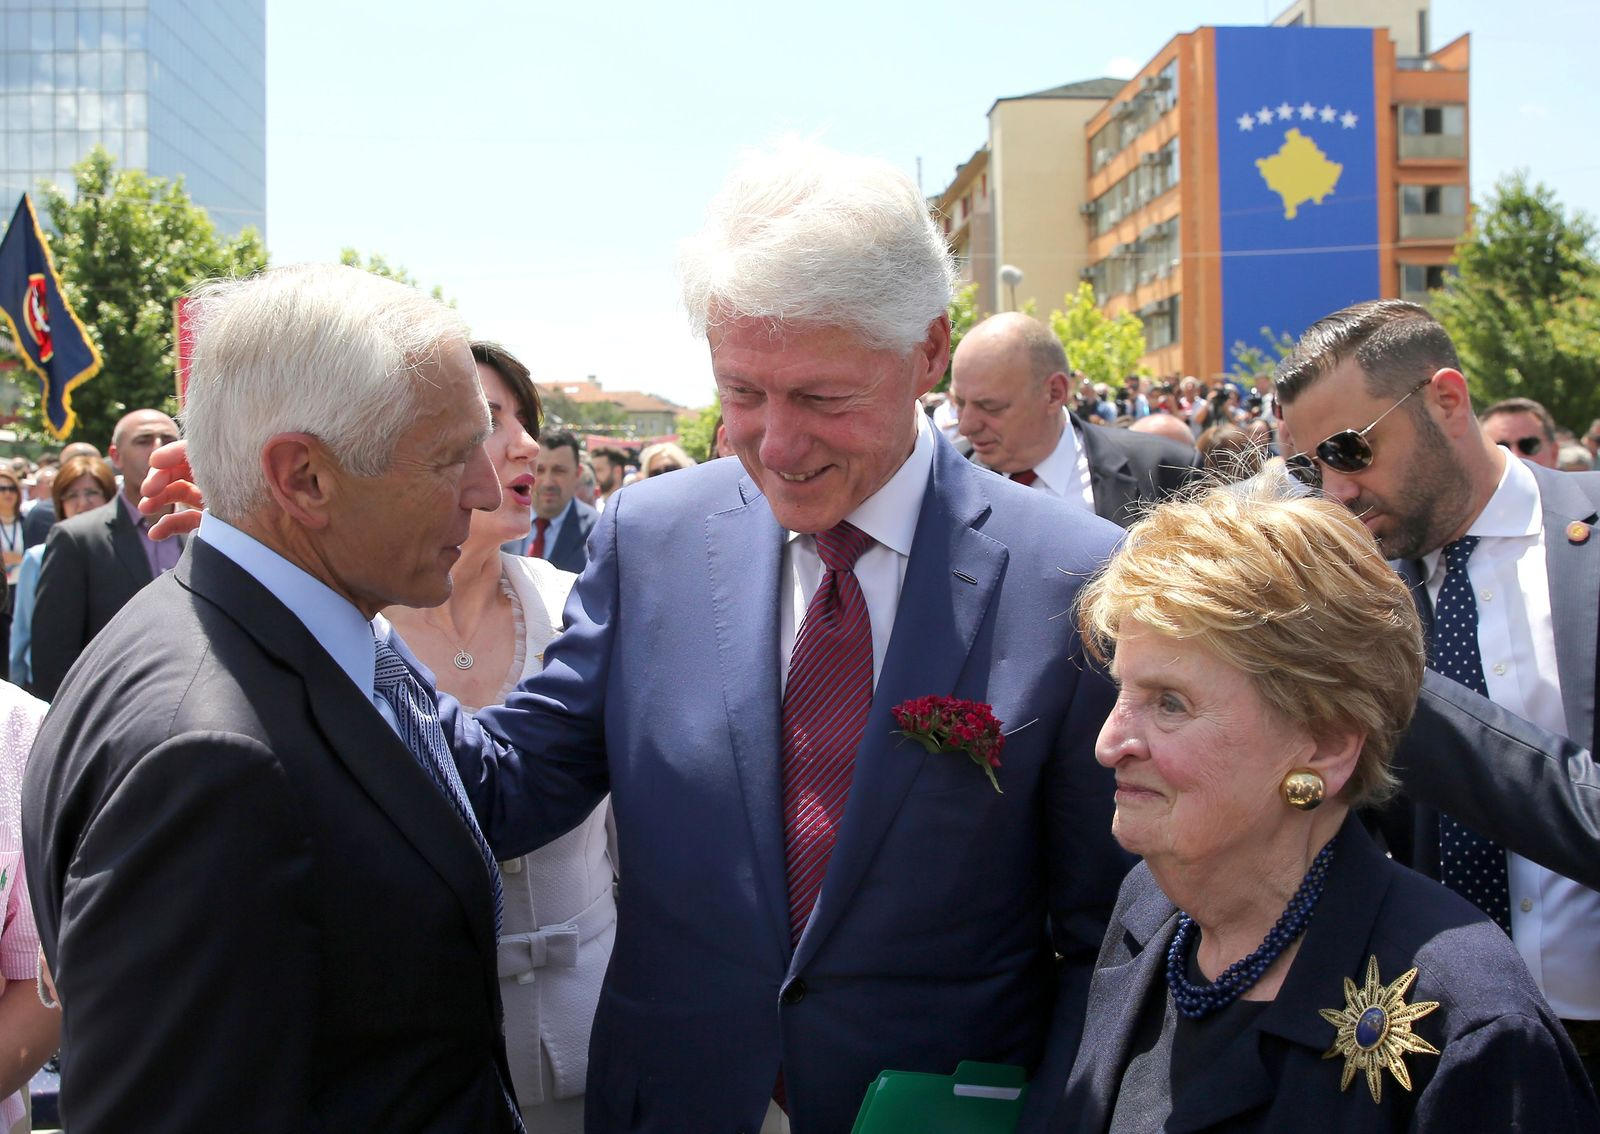 Former U.S. President Bill Clinton, center, speaks with ex-Secretary of State Madeleine Albright, right, and then-NATO commander Wesley Clark during anniversary celebrations in the capital Pristina, Kosovo, Wednesday, June 12, 2019. It's exactly 20 years since NATO forces set foot in the former Yugoslav province, after an allied bombing campaign ended Serbia's bloody crackdown on an insurrection by the majority ethnic Albanian population in Kosovo _ revered by Serbs as their historic and religious heartland. (AP Photo/Visar Kryeziu)